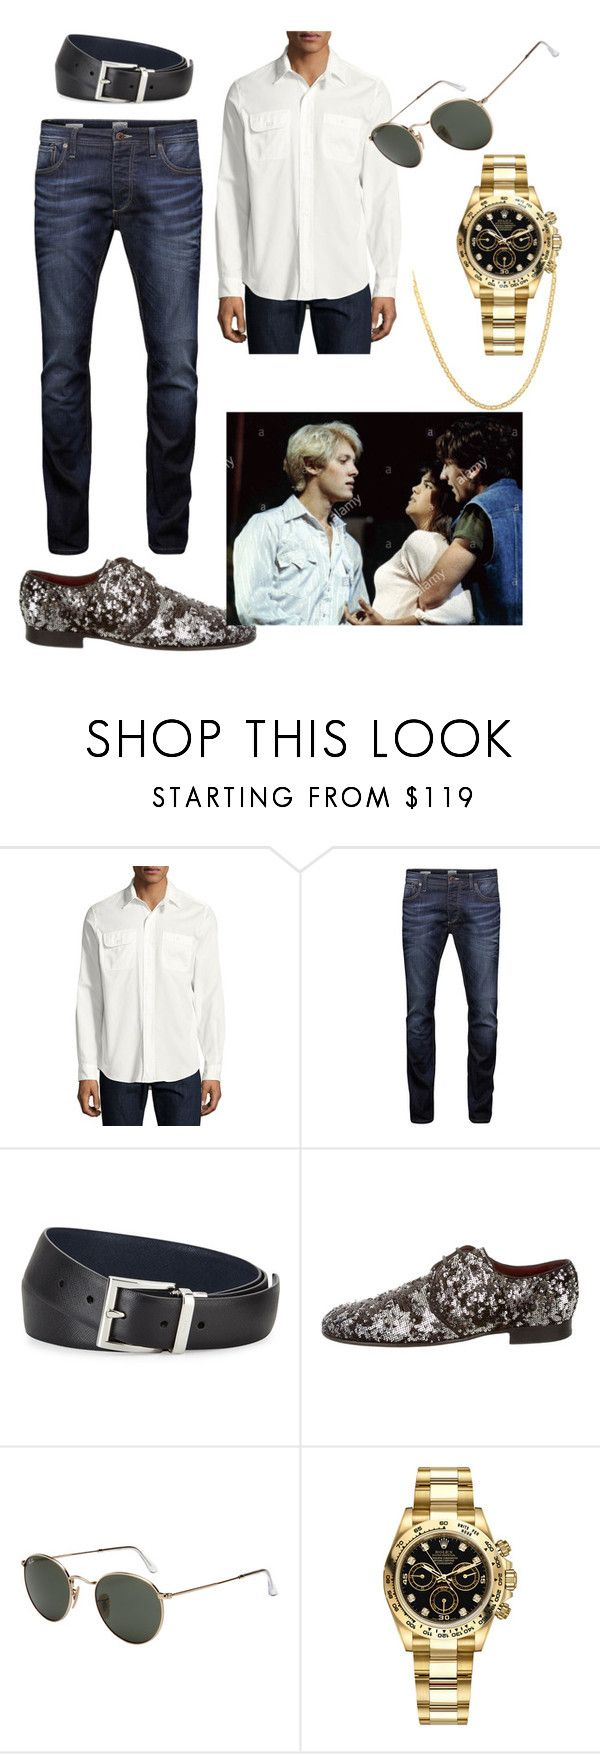 """Dutra (James Spader) The New Kids 1985 (watch is encouraged!)"" by katrinalester123 ❤ liked on Polyvore featuring Ralph Lauren, Jack & Jones, Prada, Dolce&Gabbana, Ray-Ban, Rolex, Lord & Taylor, men's fashion and menswear"